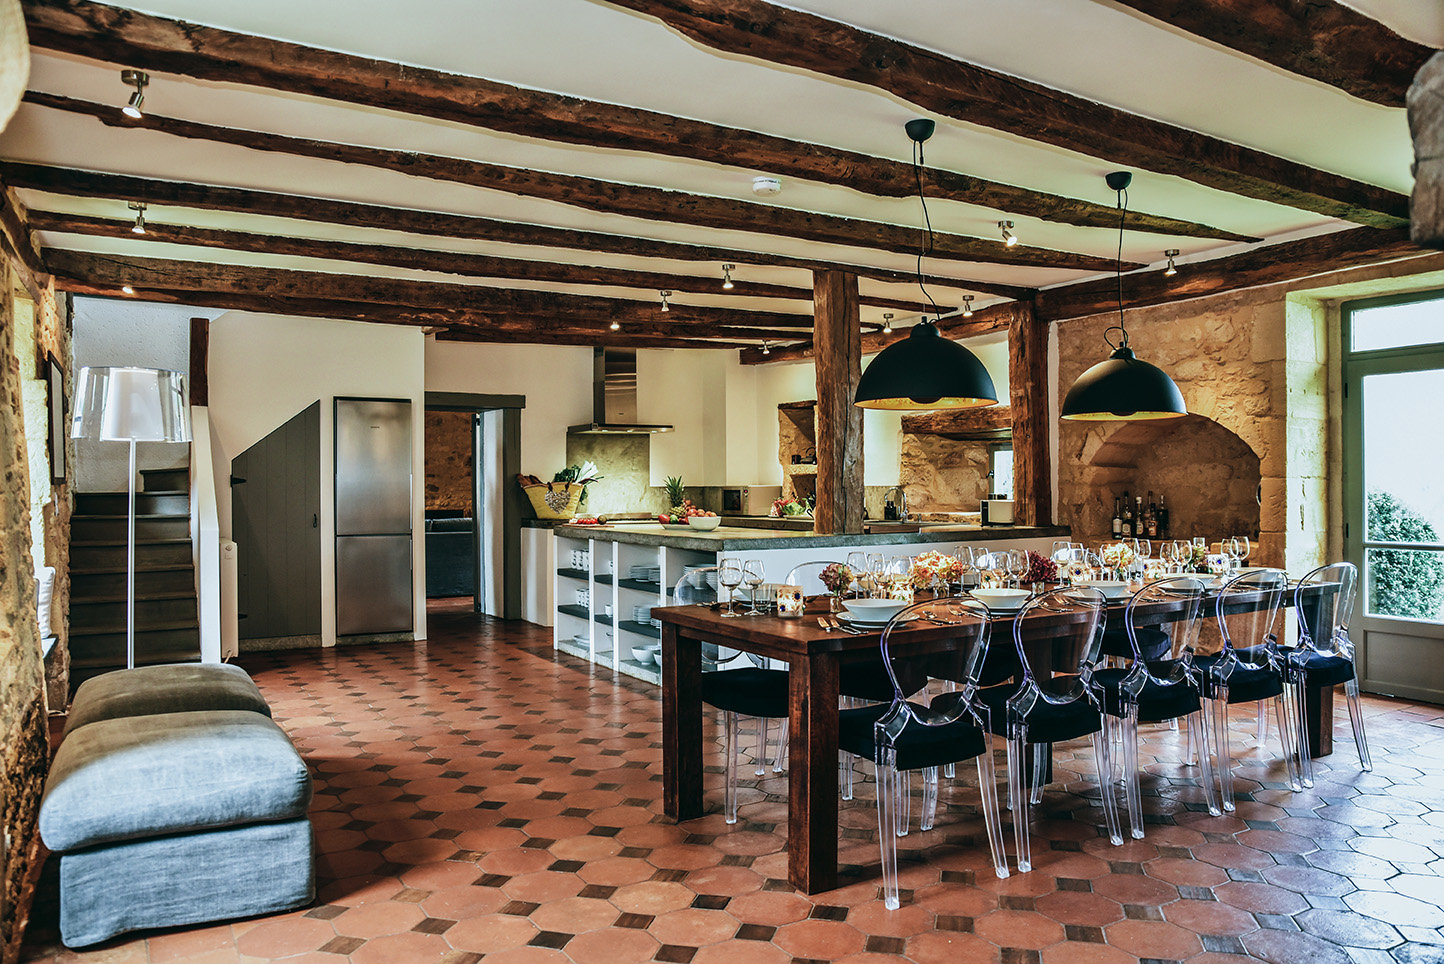 The kitchen of Le Mas, a 5-star holiday home in the Dordogne, with table, perspex Pedrali chairs, and a terracotta floor